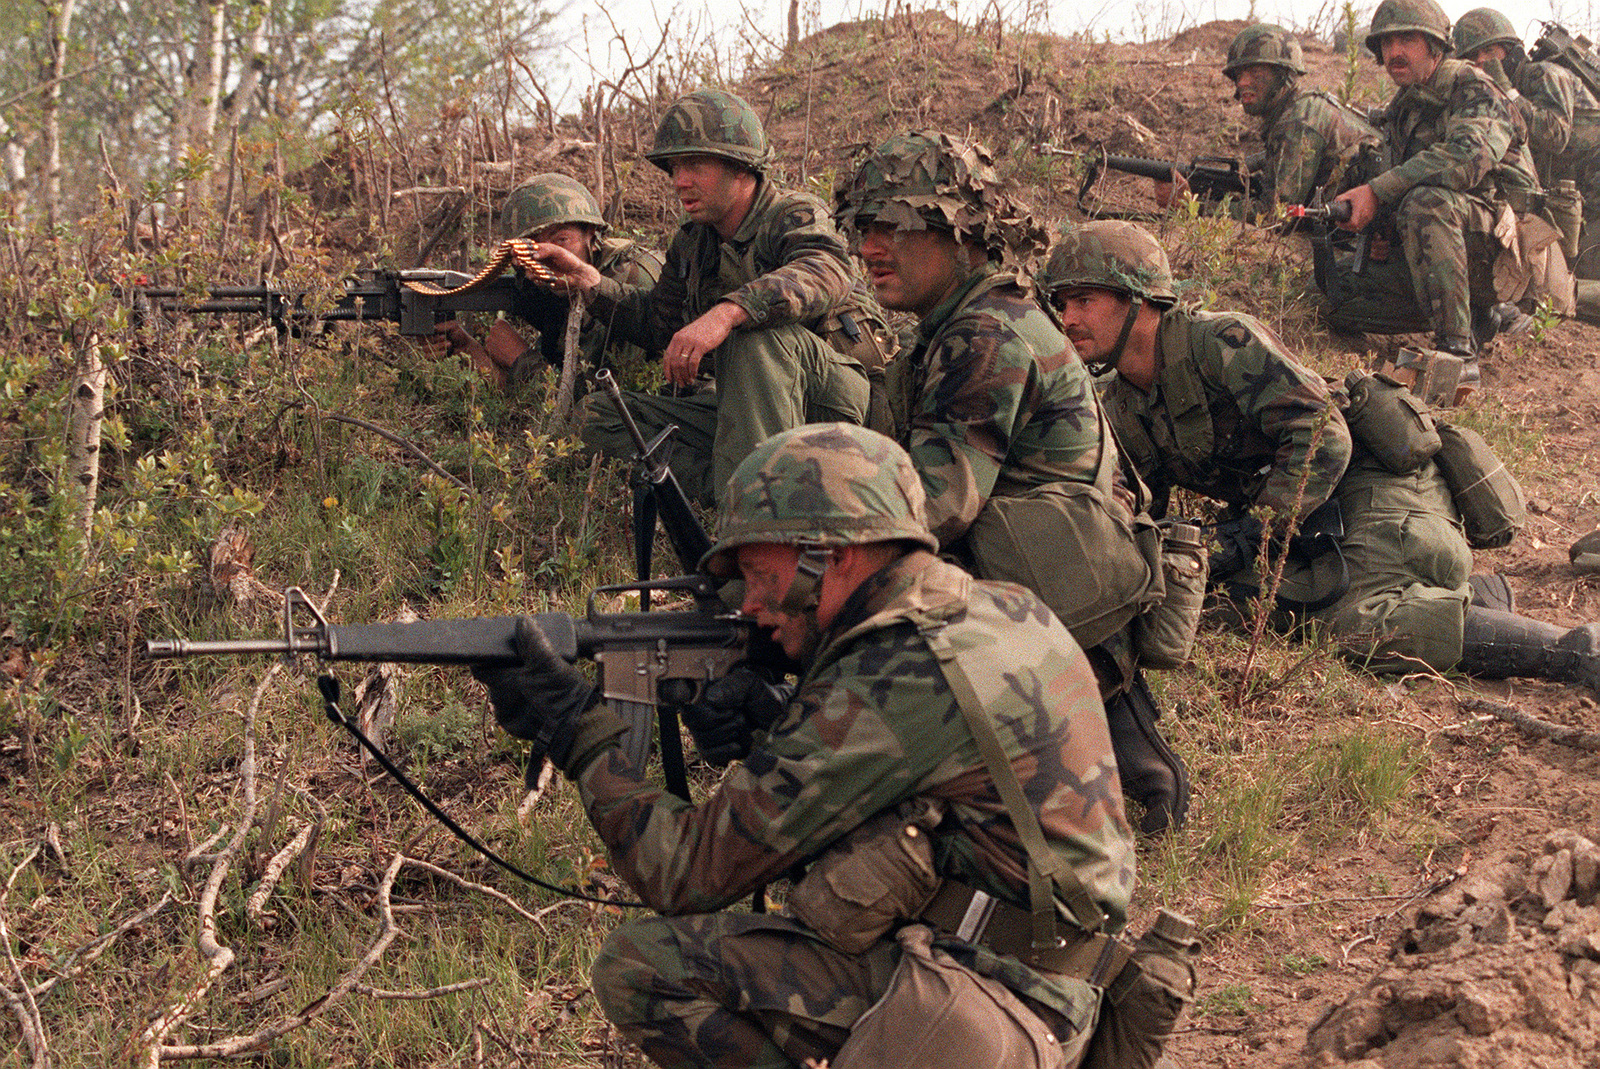 Members of the 3rd Bn , 327th Inf , 101st Airborne Div , defend